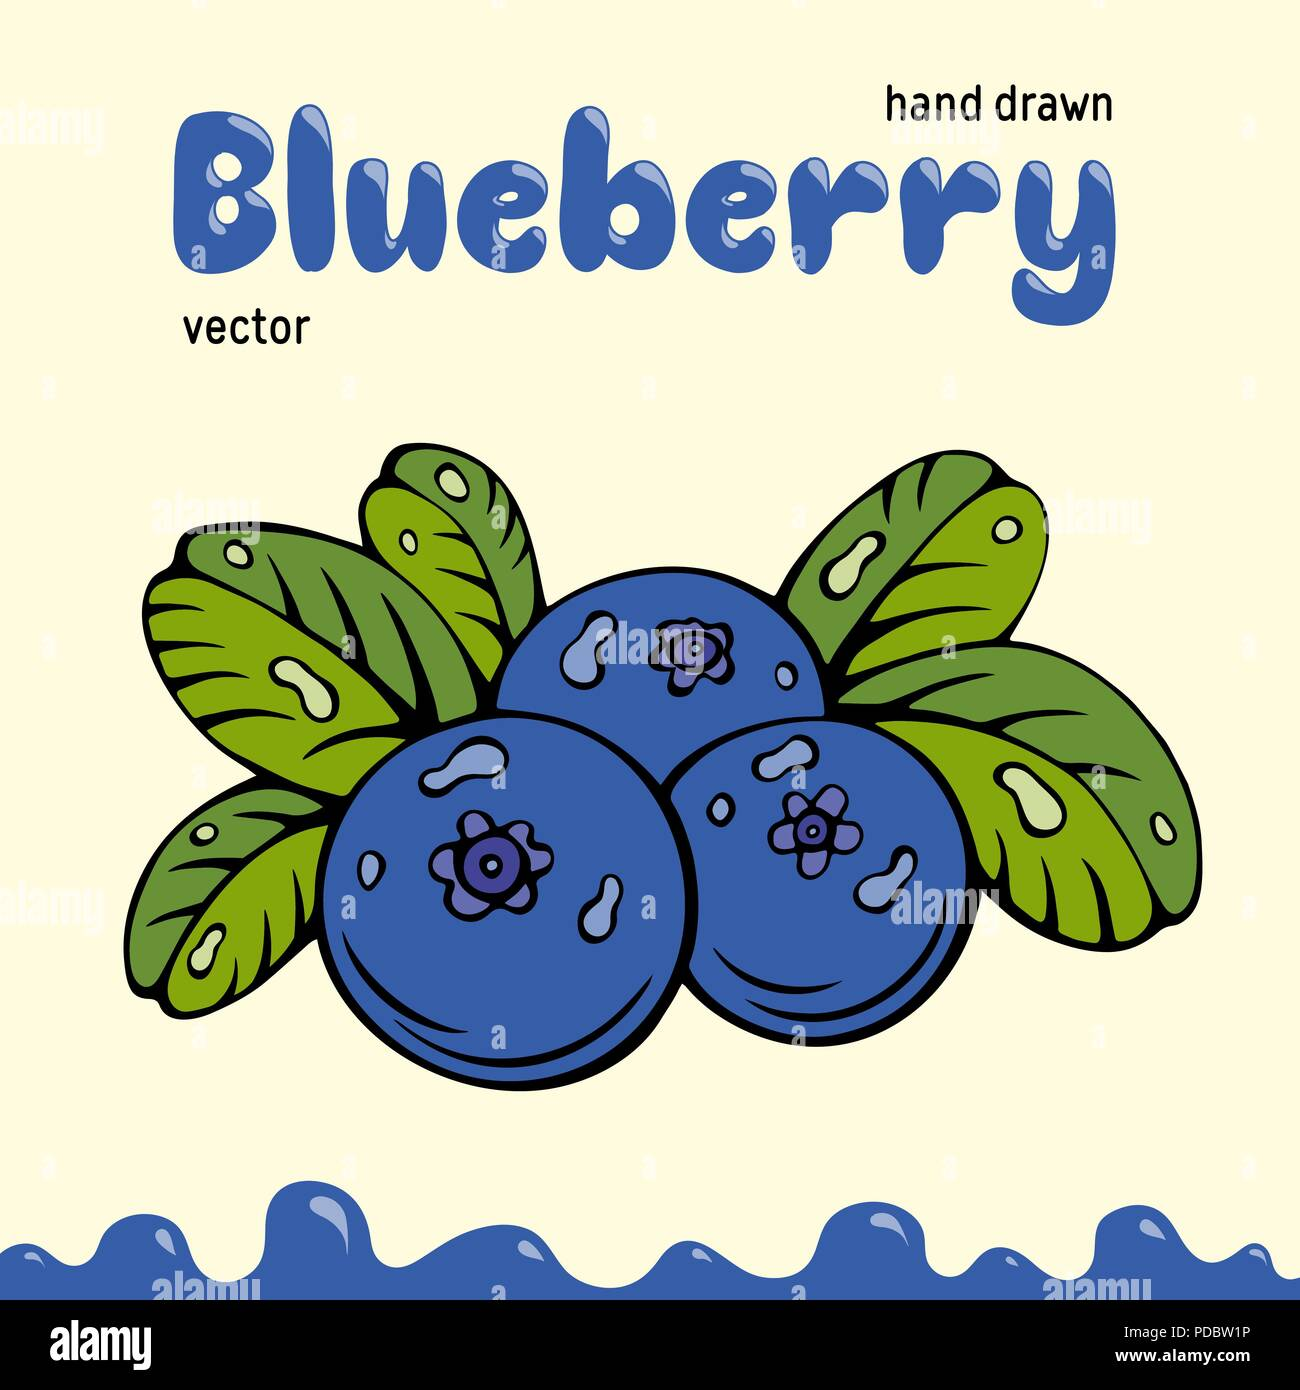 Blueberry vector illustration, berries images. Doodle Blueberry vector illustration in blue and green color. Blueberry berries images for menu, package design. Vector berries images of blueberry - Stock Vector